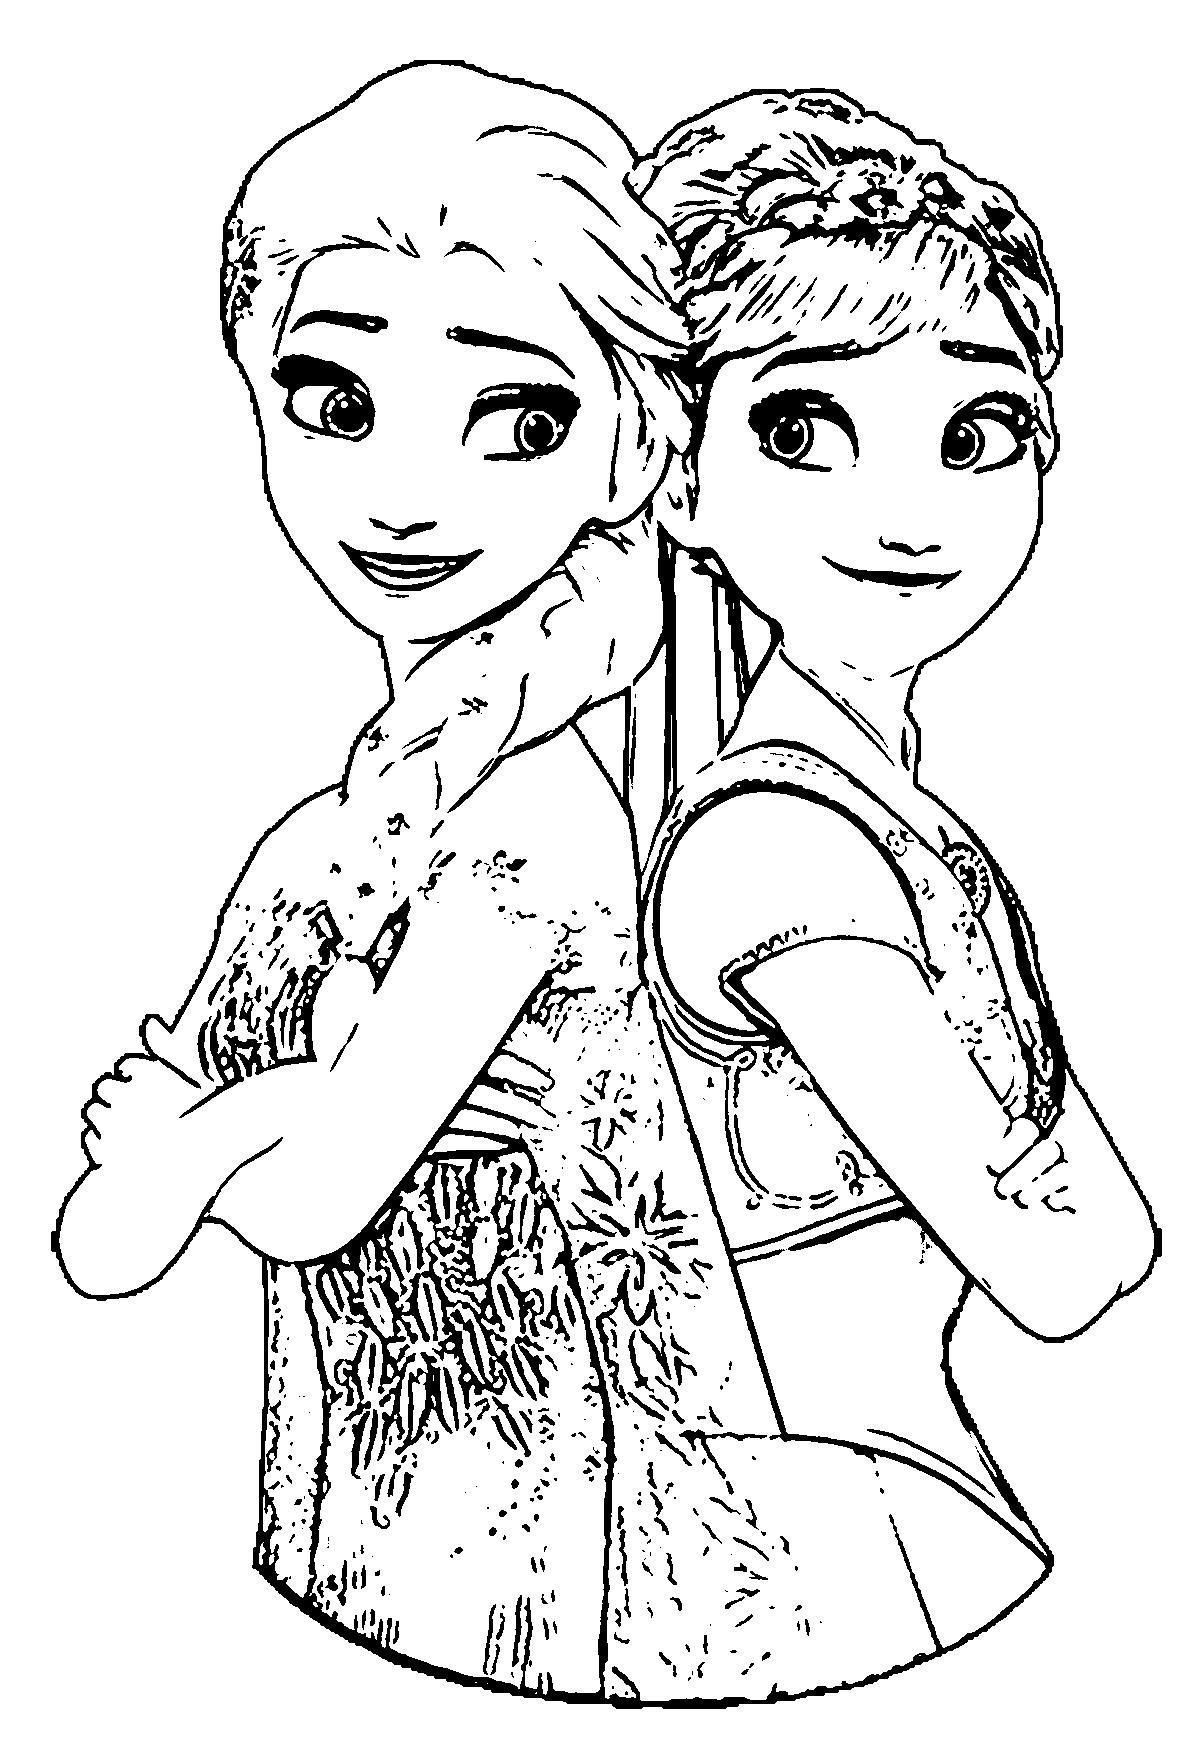 elsa pictures to color frozen cartoon coloring pages at getdrawings free download color pictures elsa to